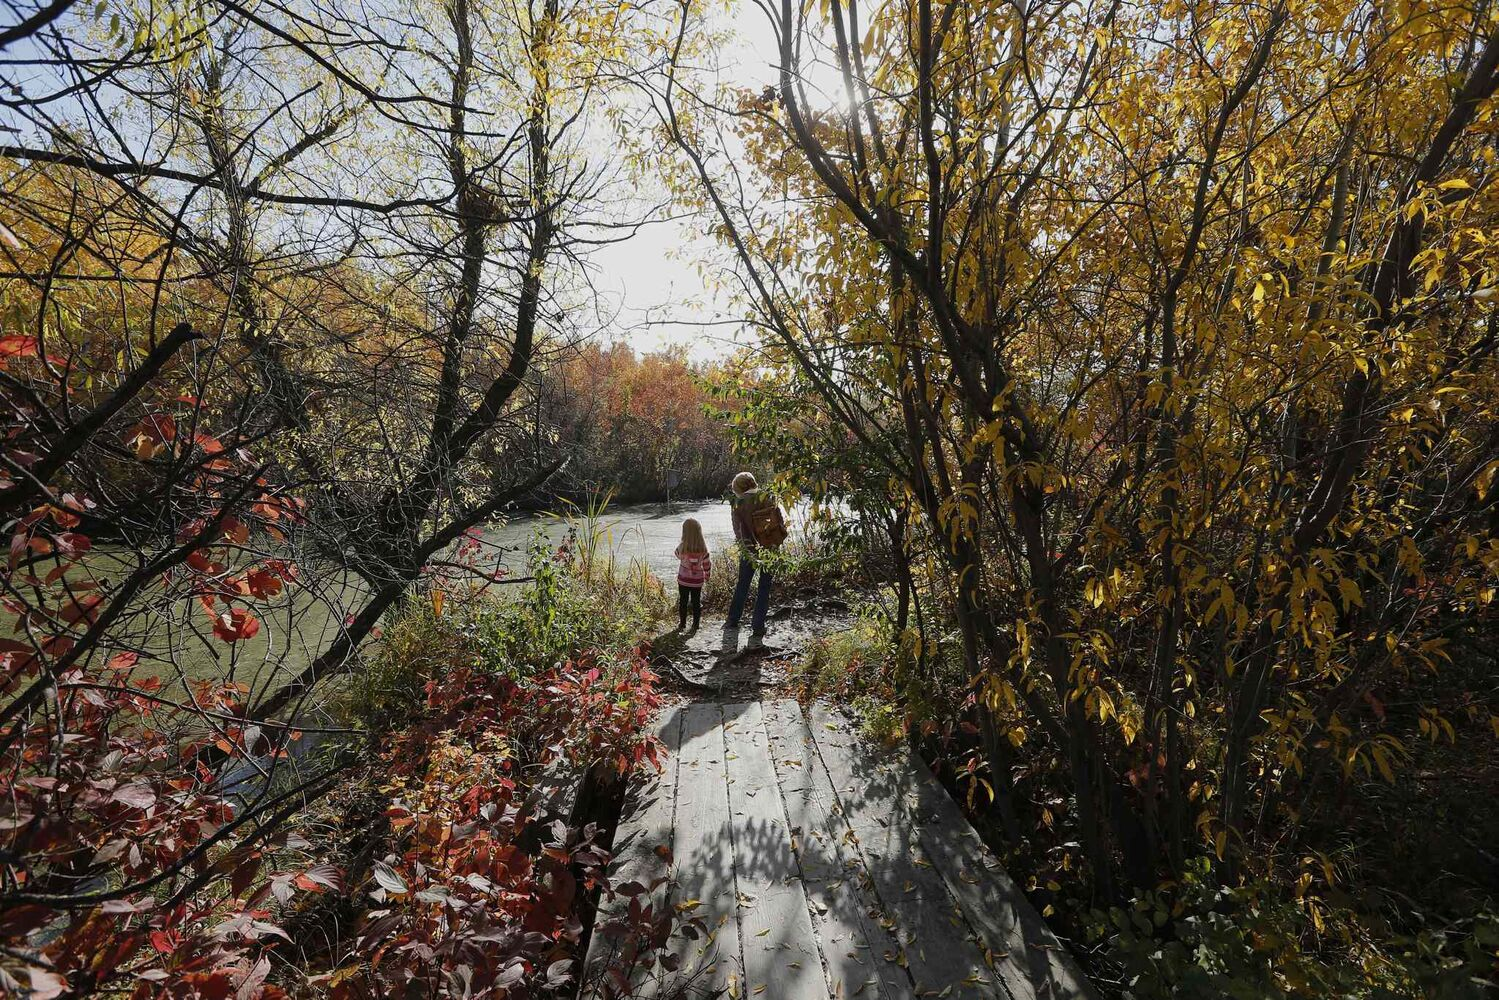 An afternoon walk is a great time to connect with nature, as well as with people. (KEN GIGLIOTTI / WINNIPEG FREE PRESS)